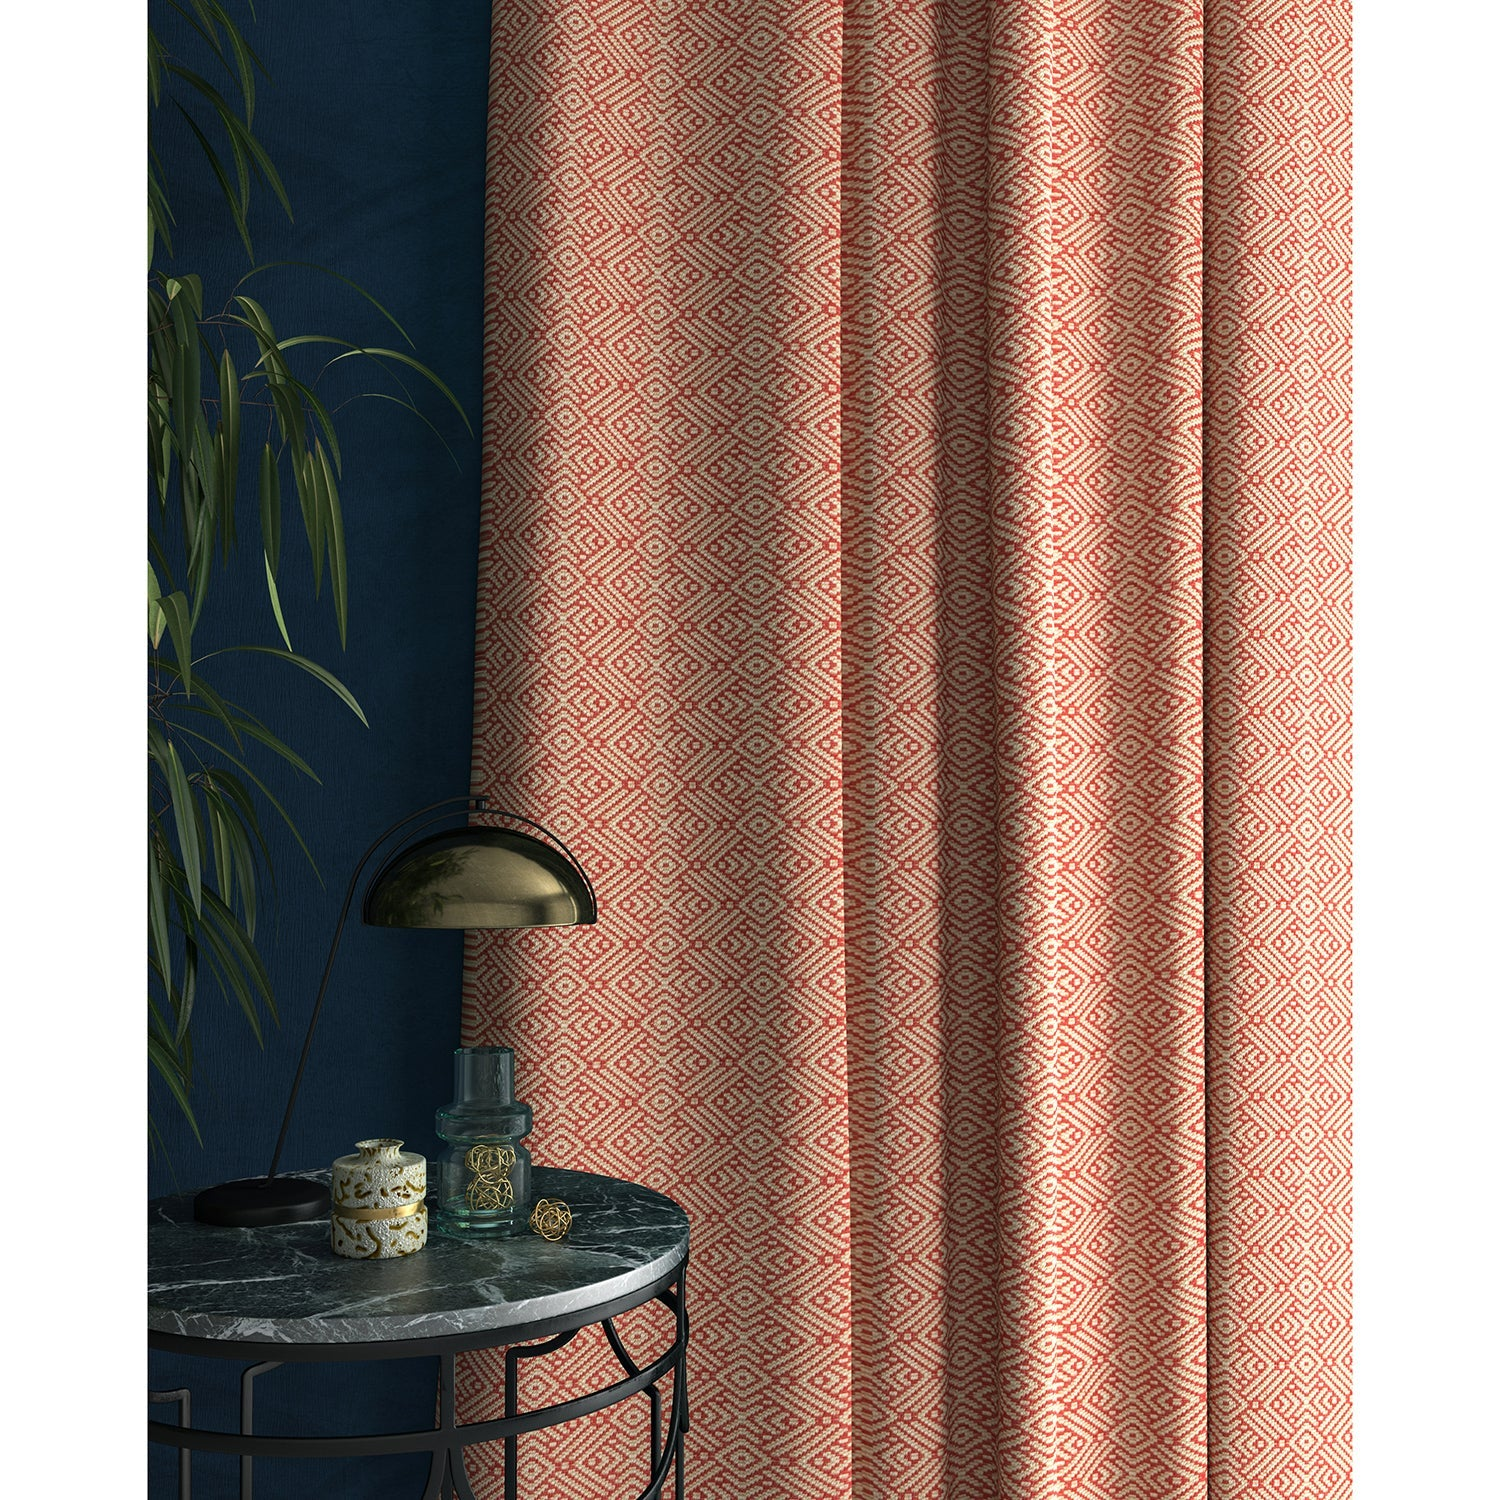 Curtains in a pink and white geometric weave fabric